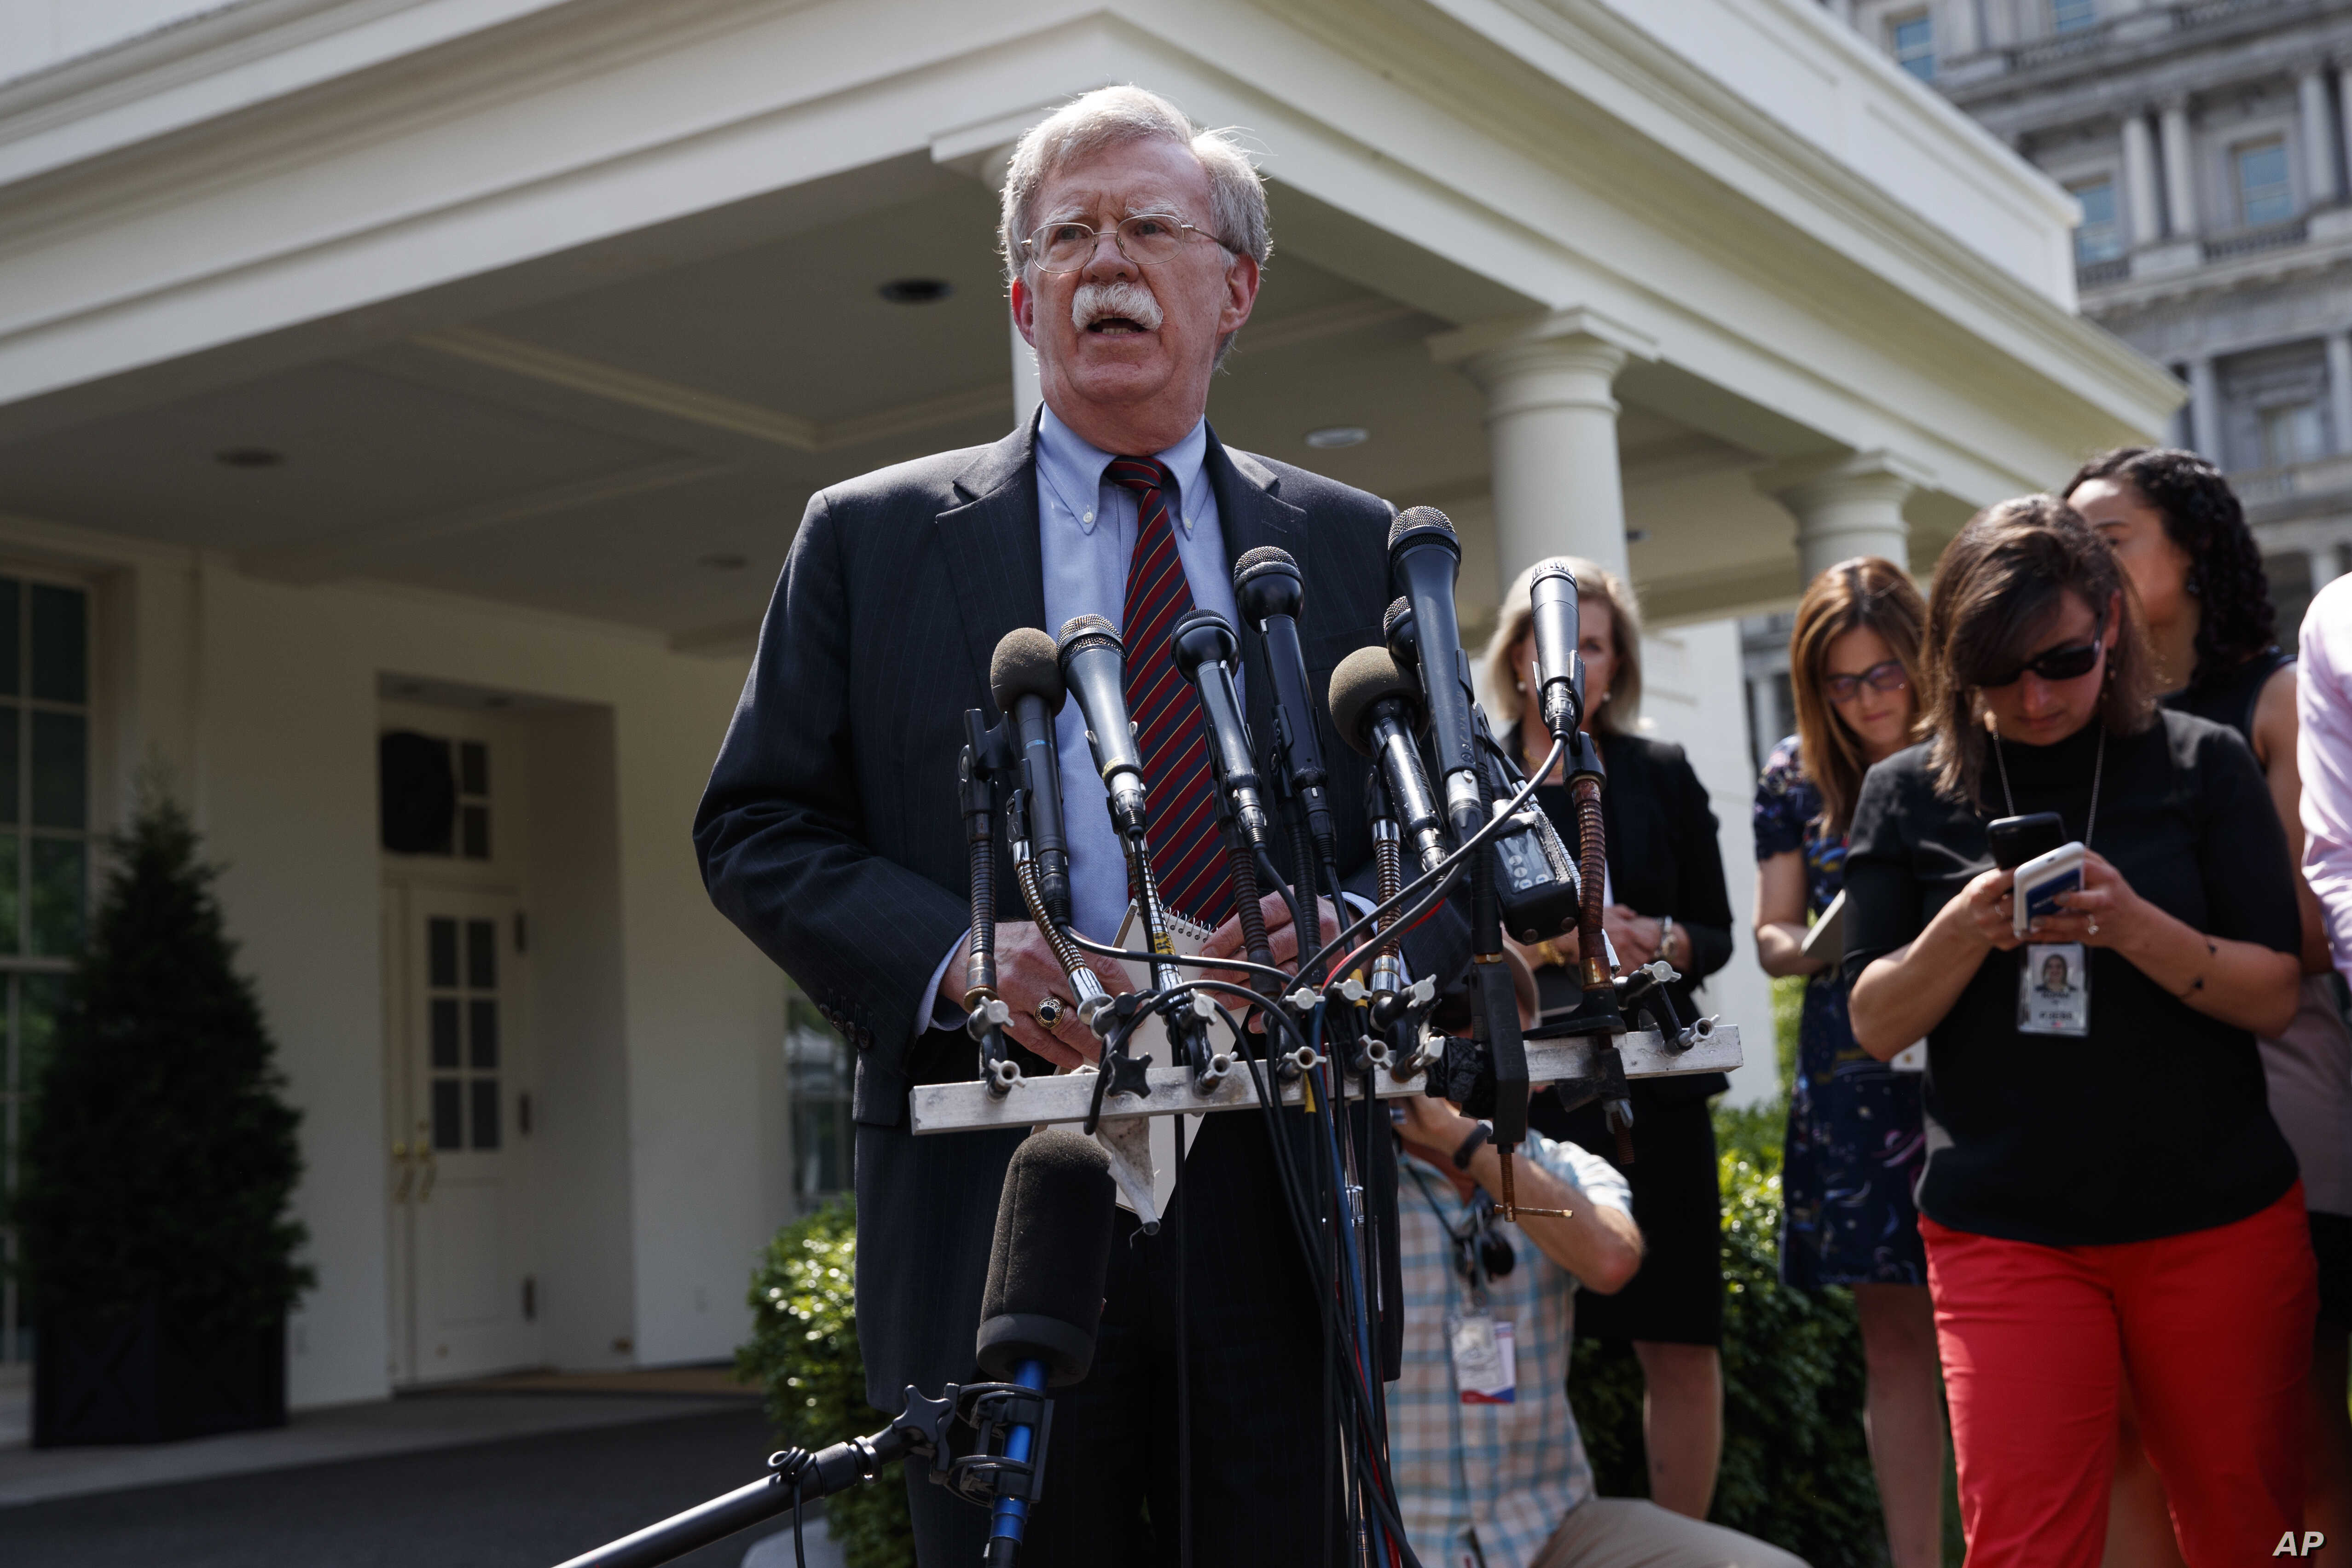 National security adviser John Bolton speaks with reporters outside the White House in Washington about the situation in Venezuela, April 30, 2019.